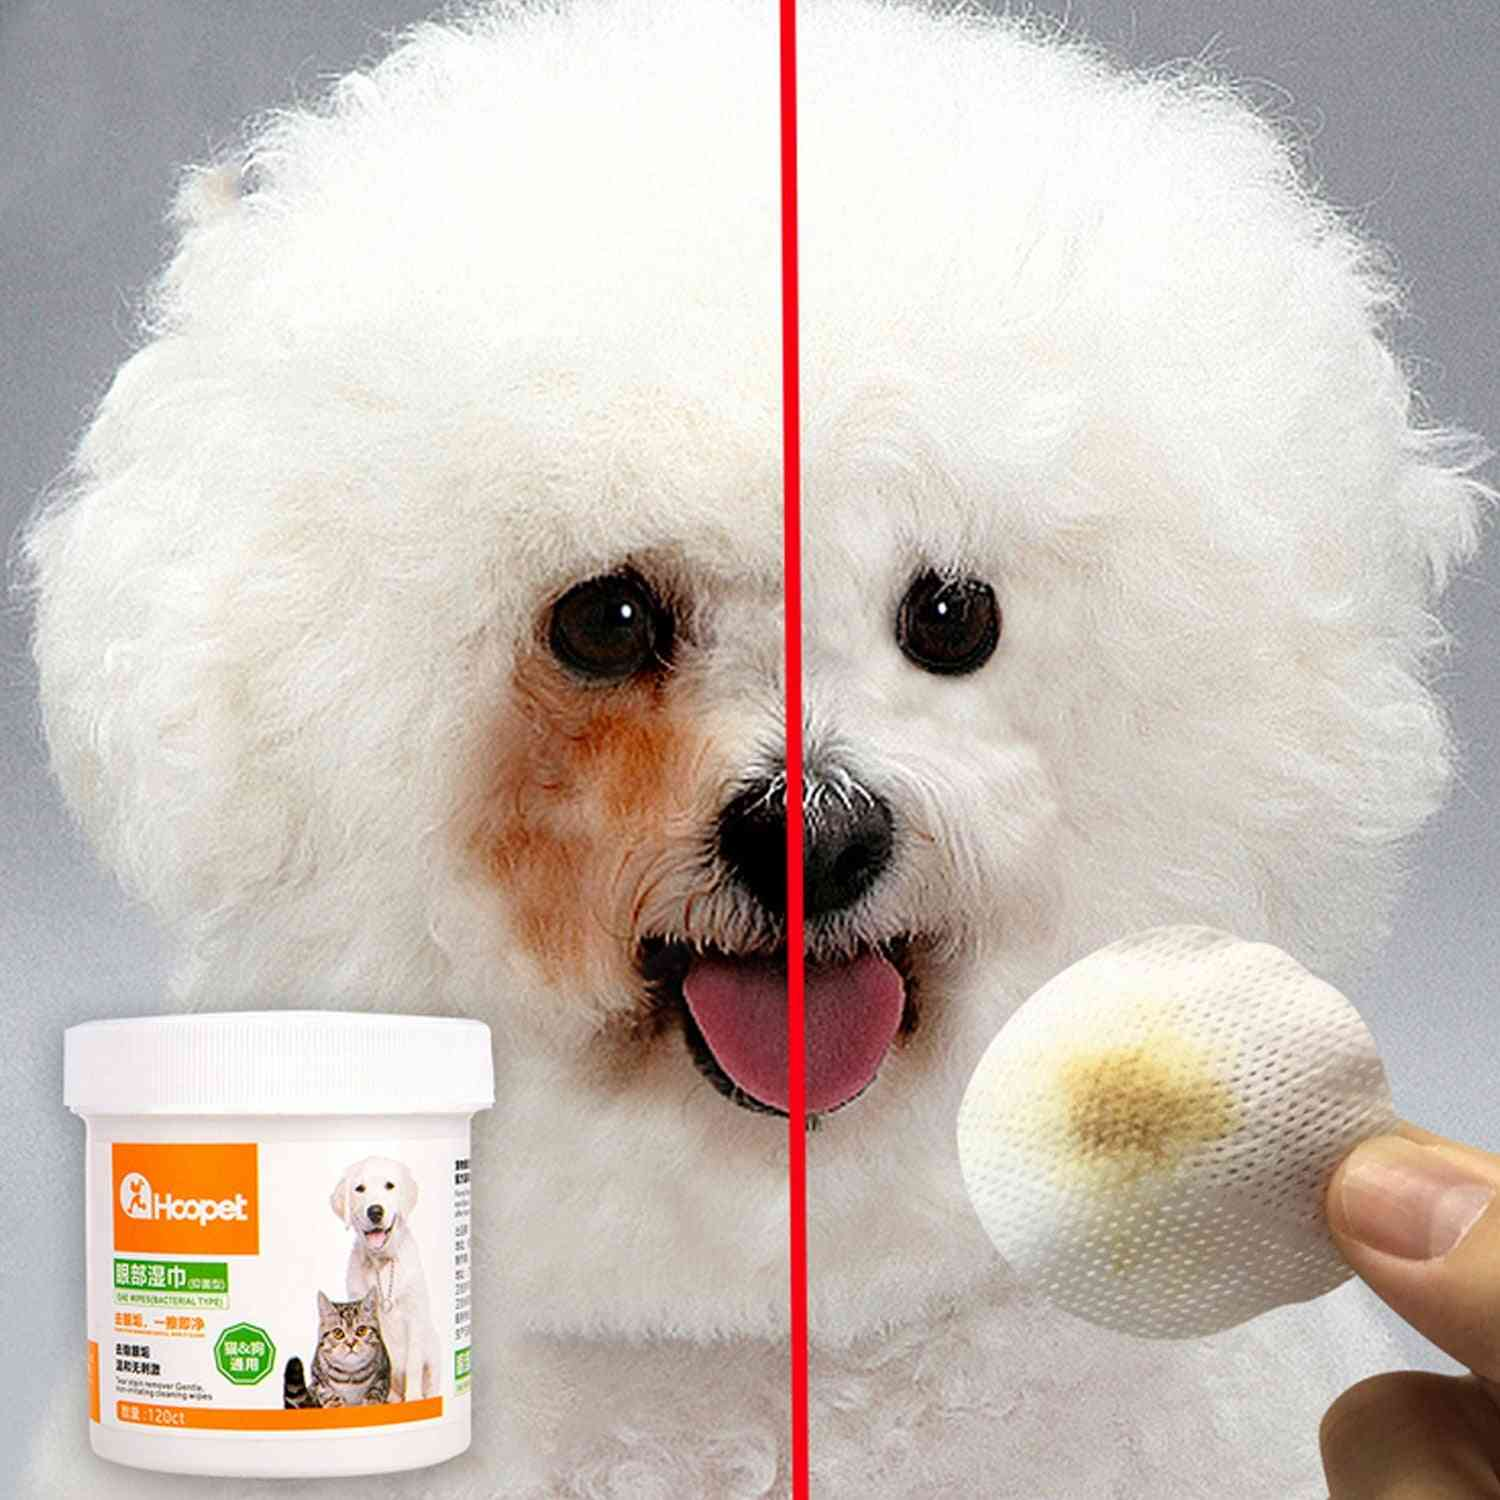 Pet Dog Cleaning Pads Facial Paper Towels Wipes - Pet Eye Wet Wipes Tear Stain Remover Wipes